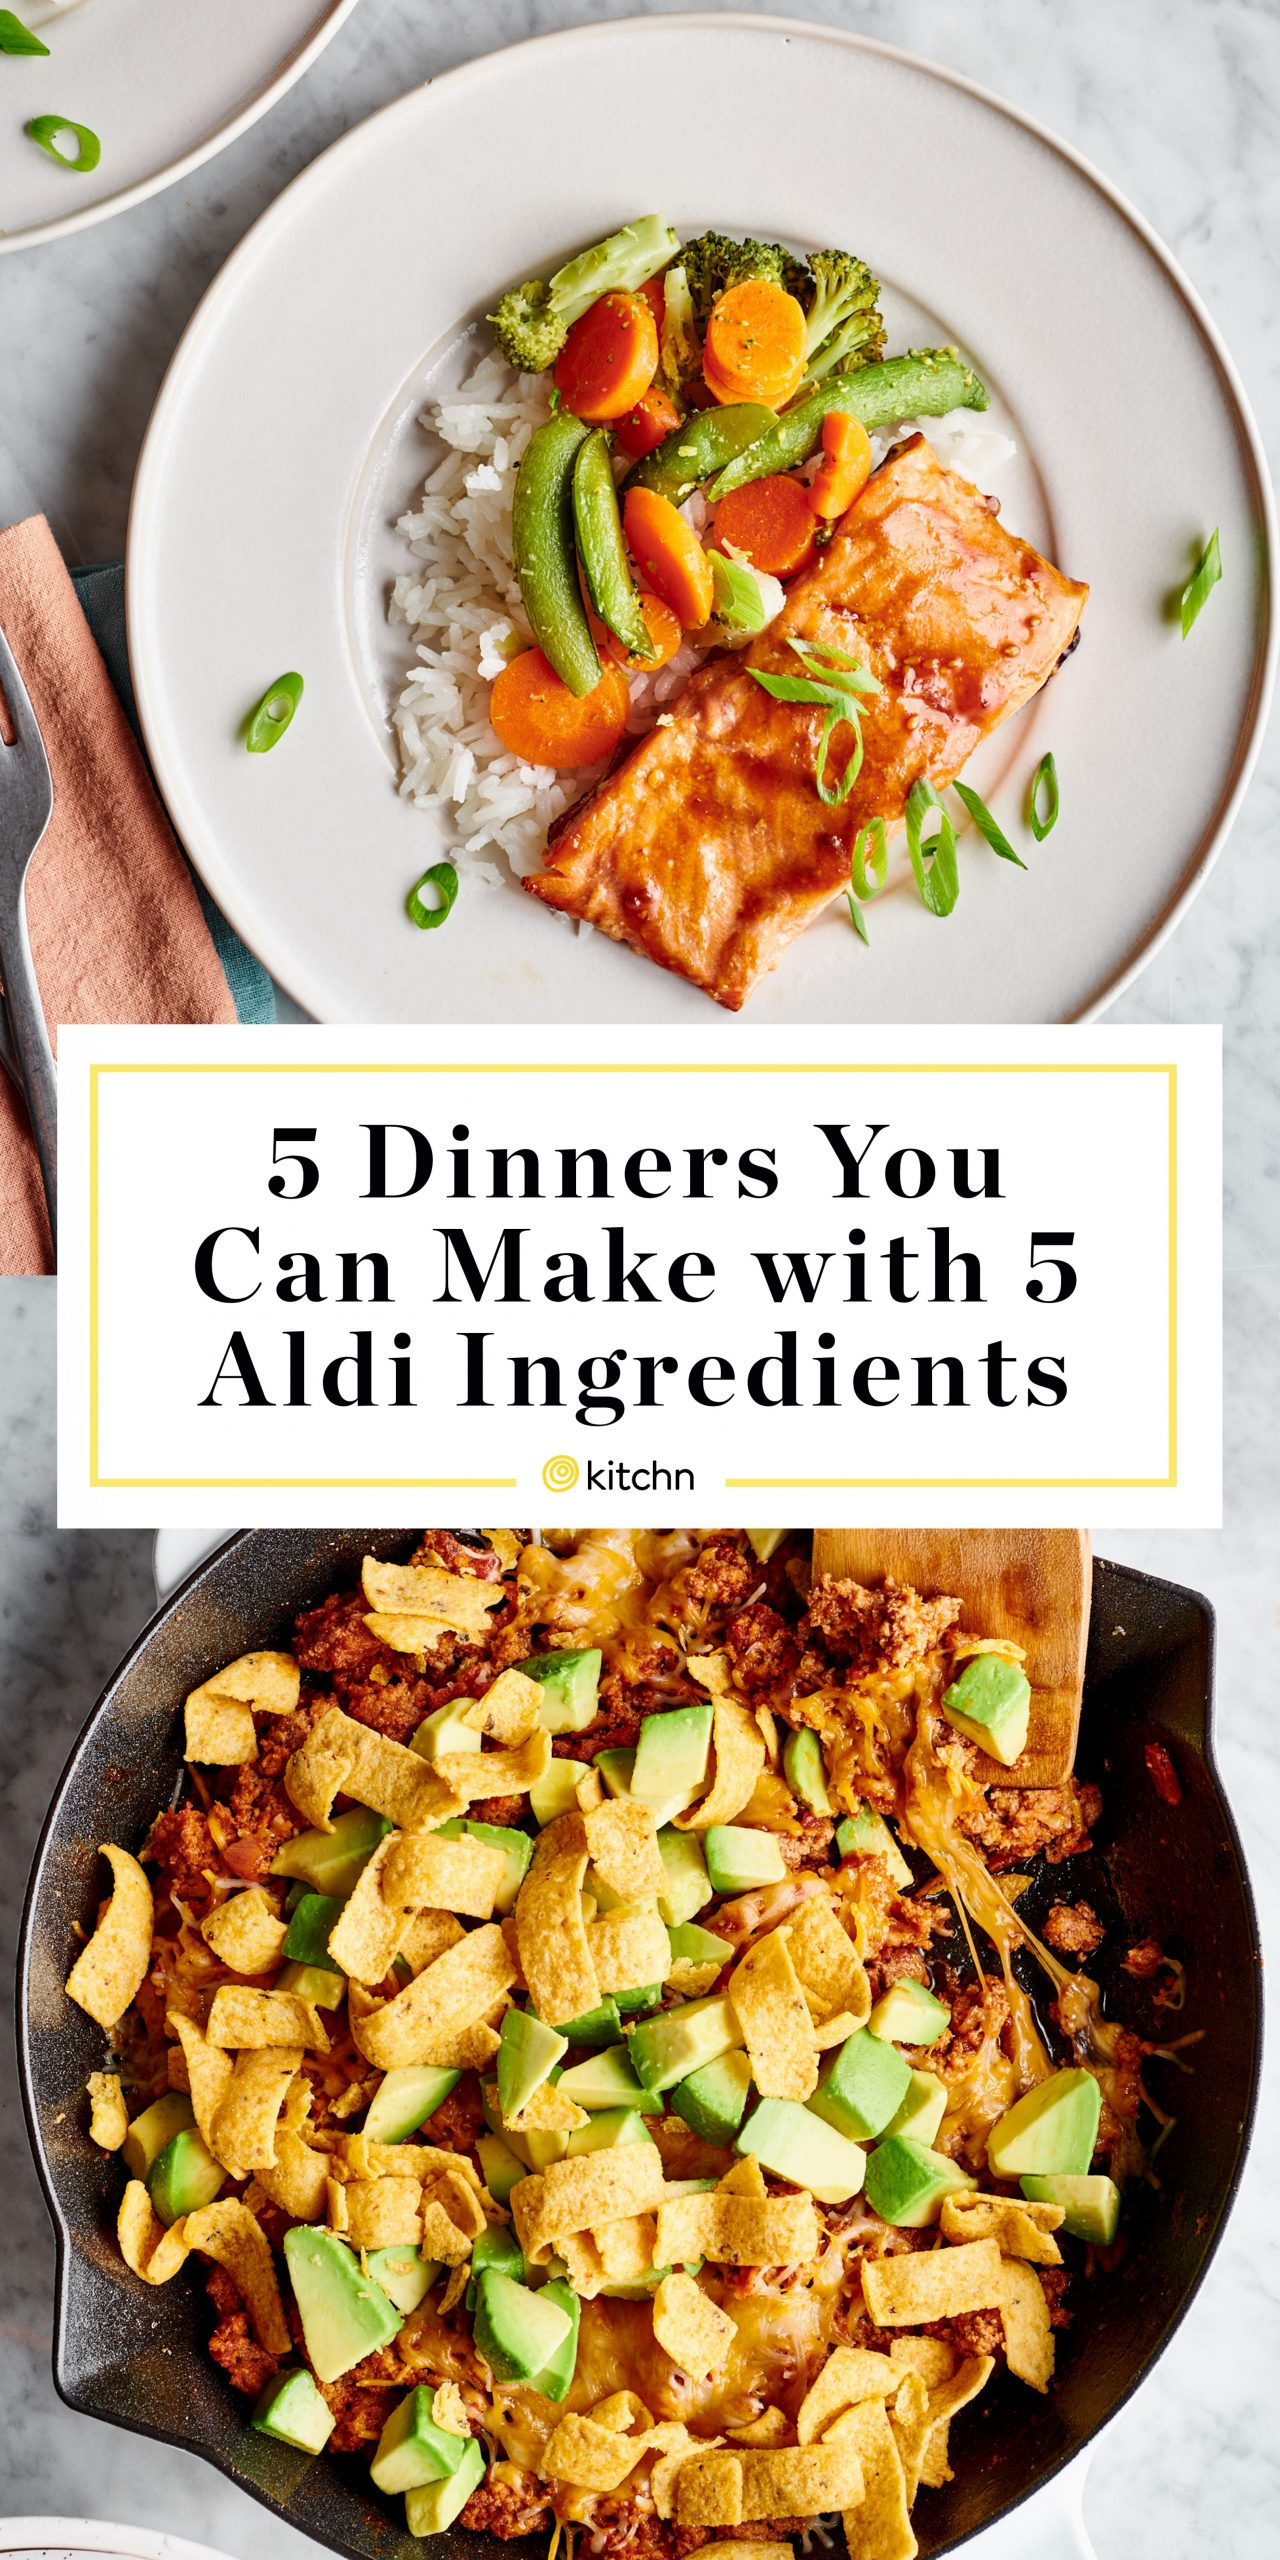 Aldi 10-Ingredient Dinner Ideas | Kitchn - Dinner Recipes Aldi